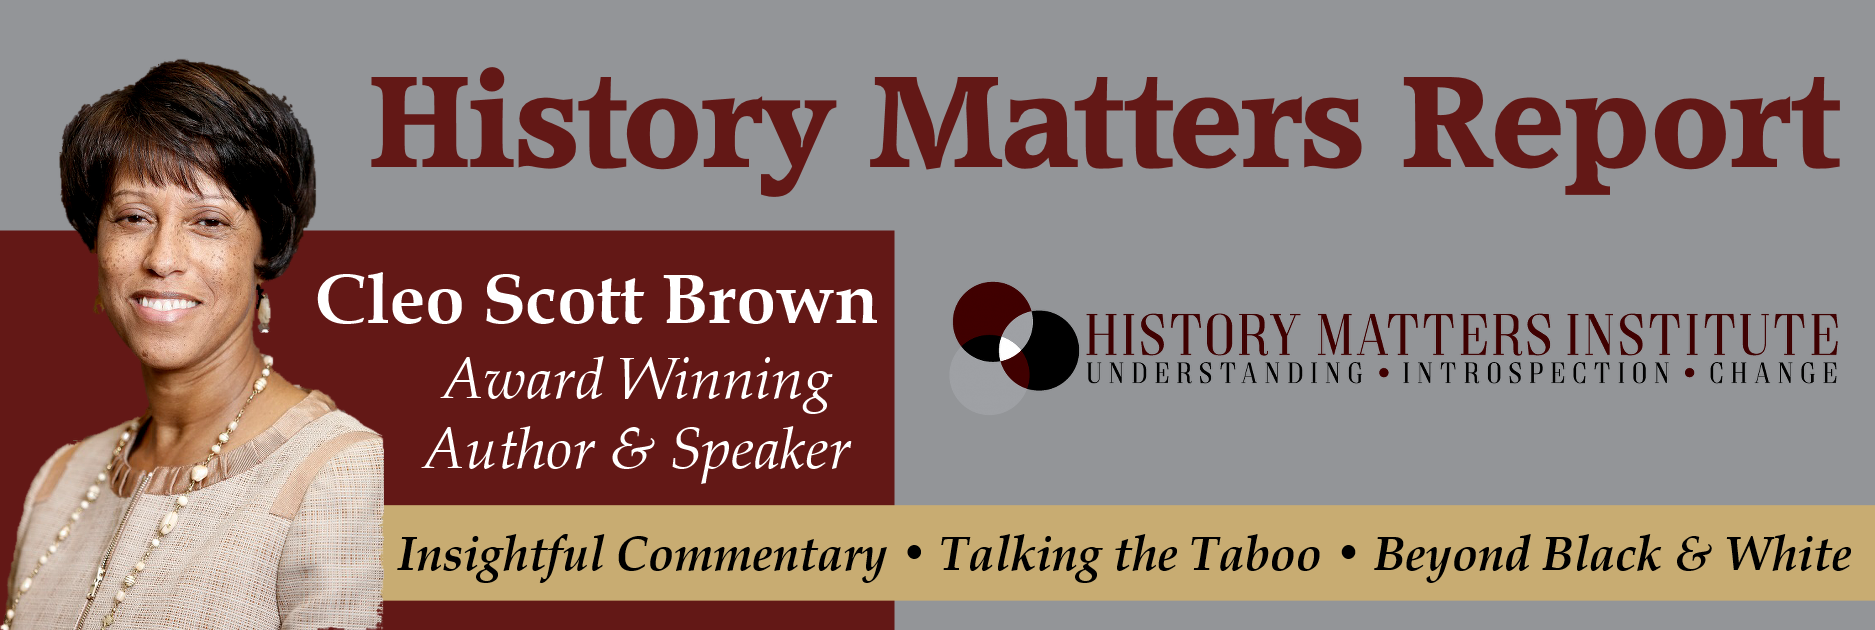 History Matters Report Banner.png